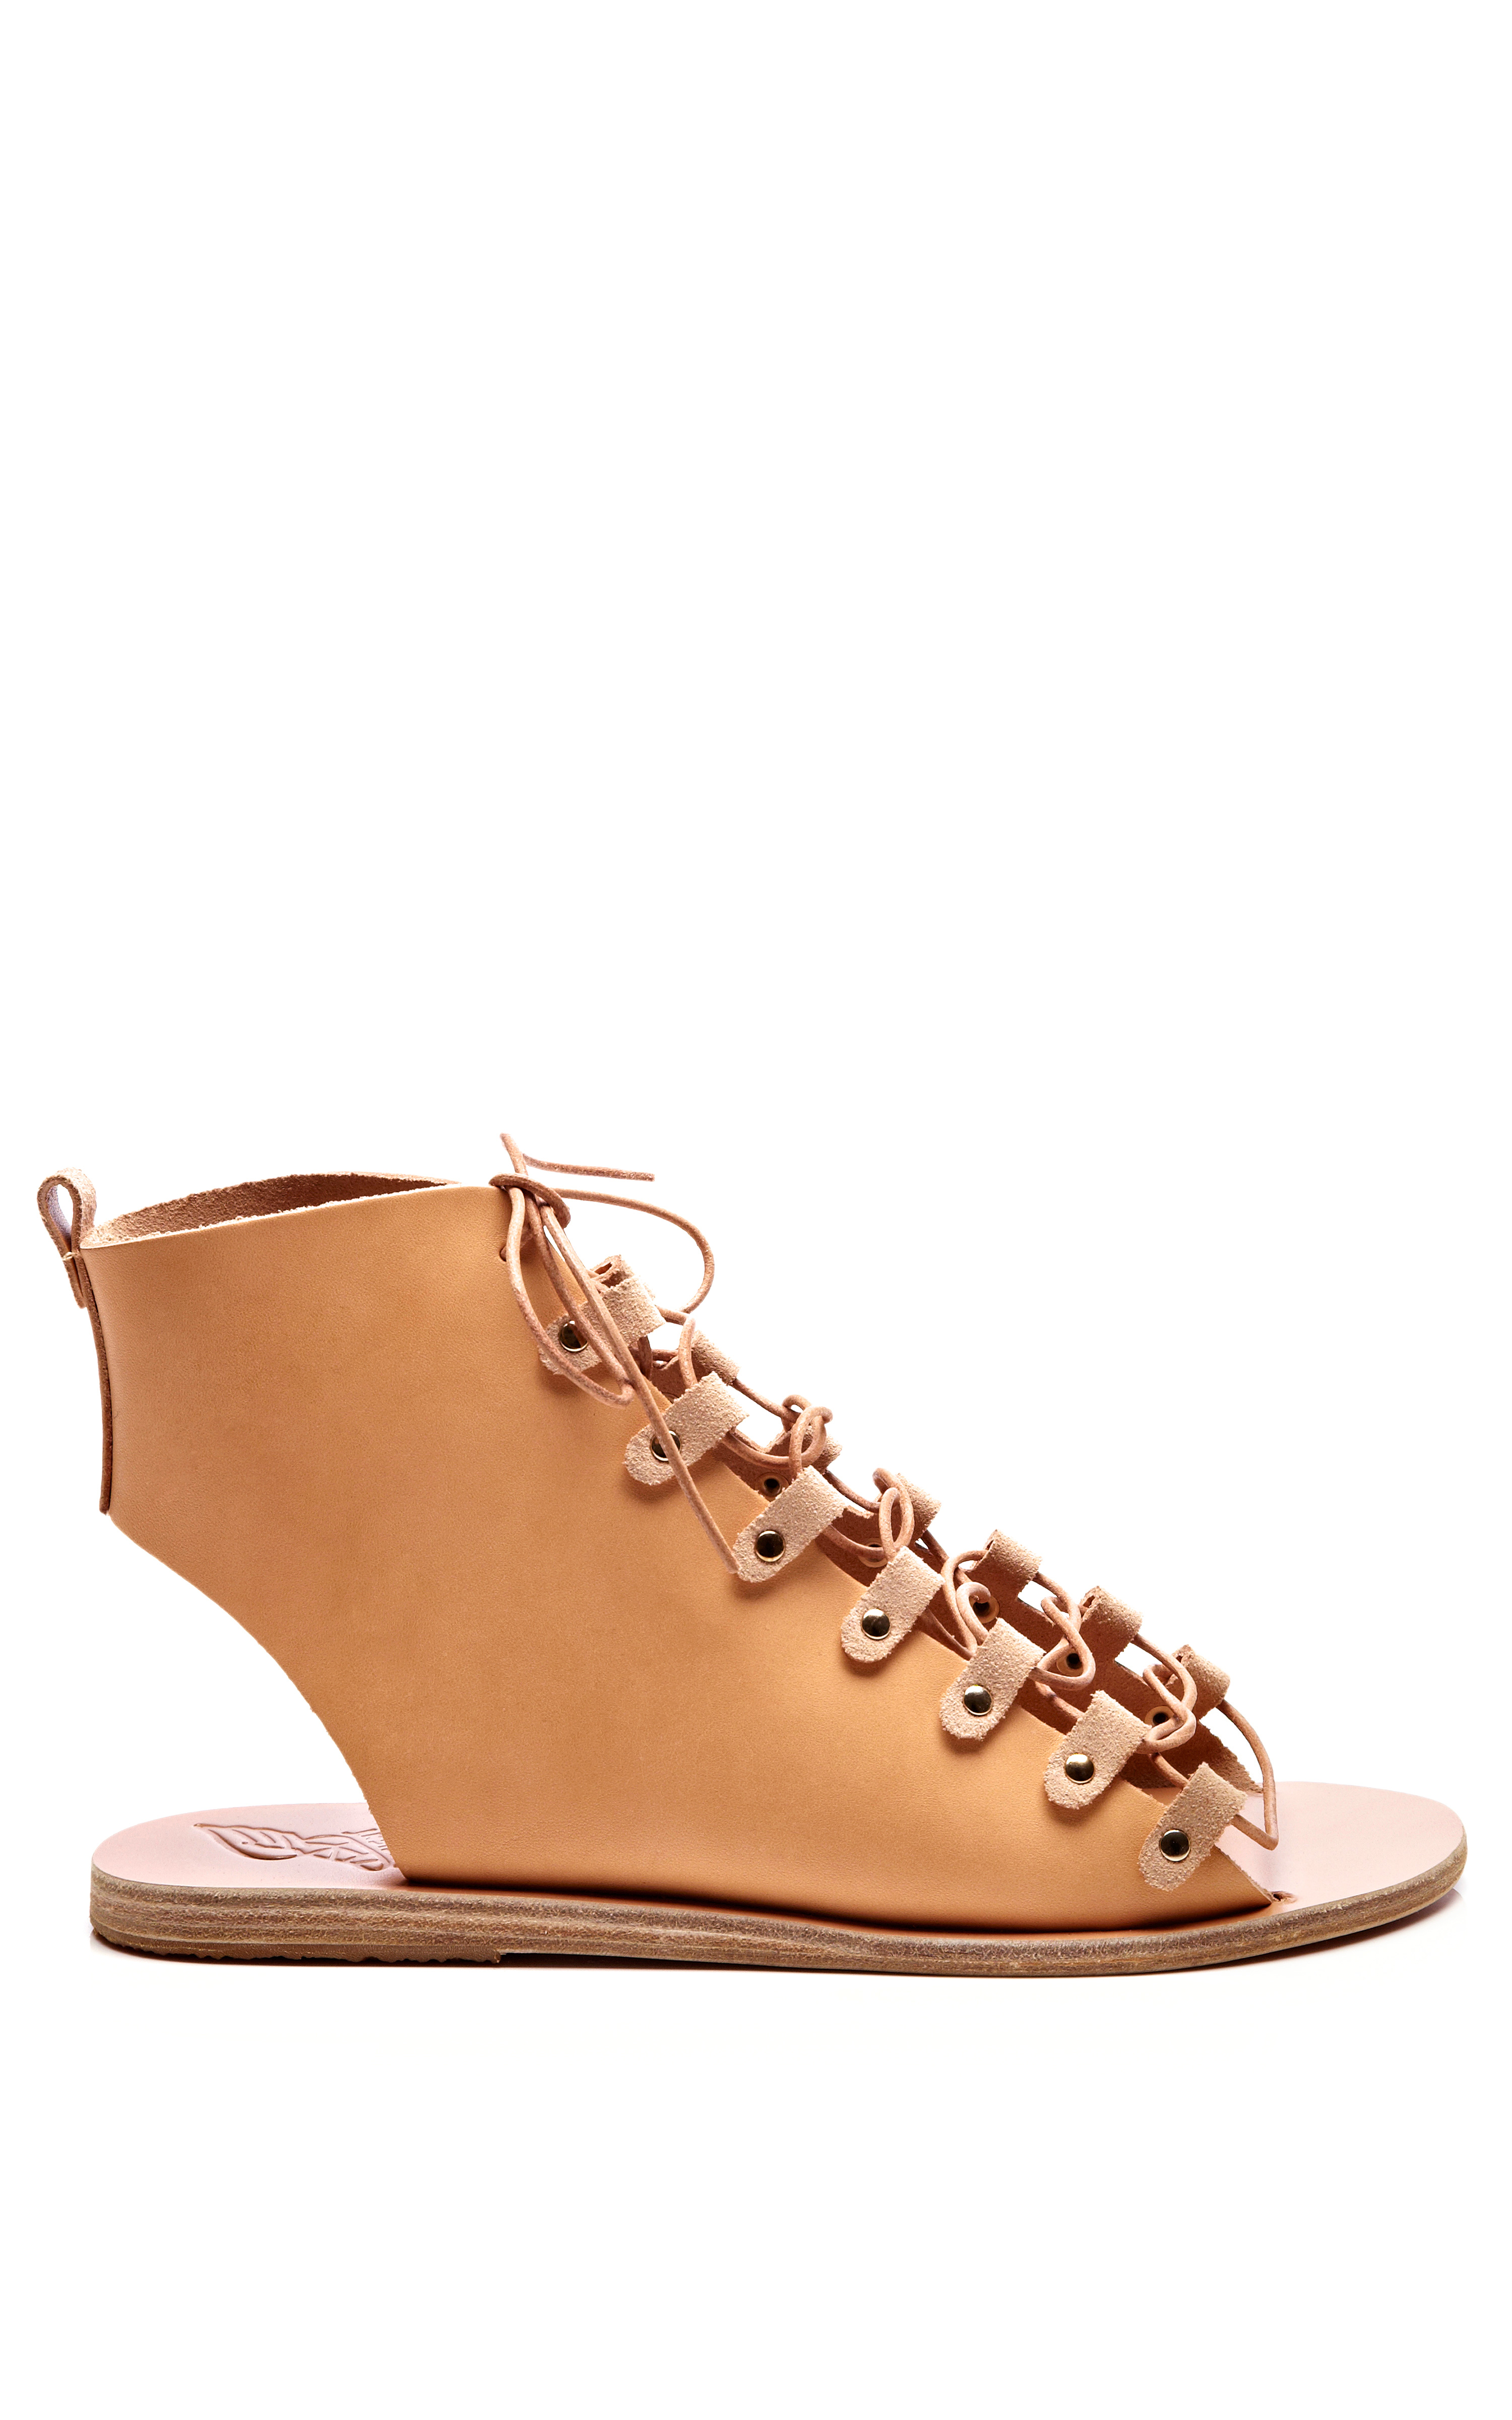 Lyst Ancient Greek Sandals Laceup Leather Gladiator